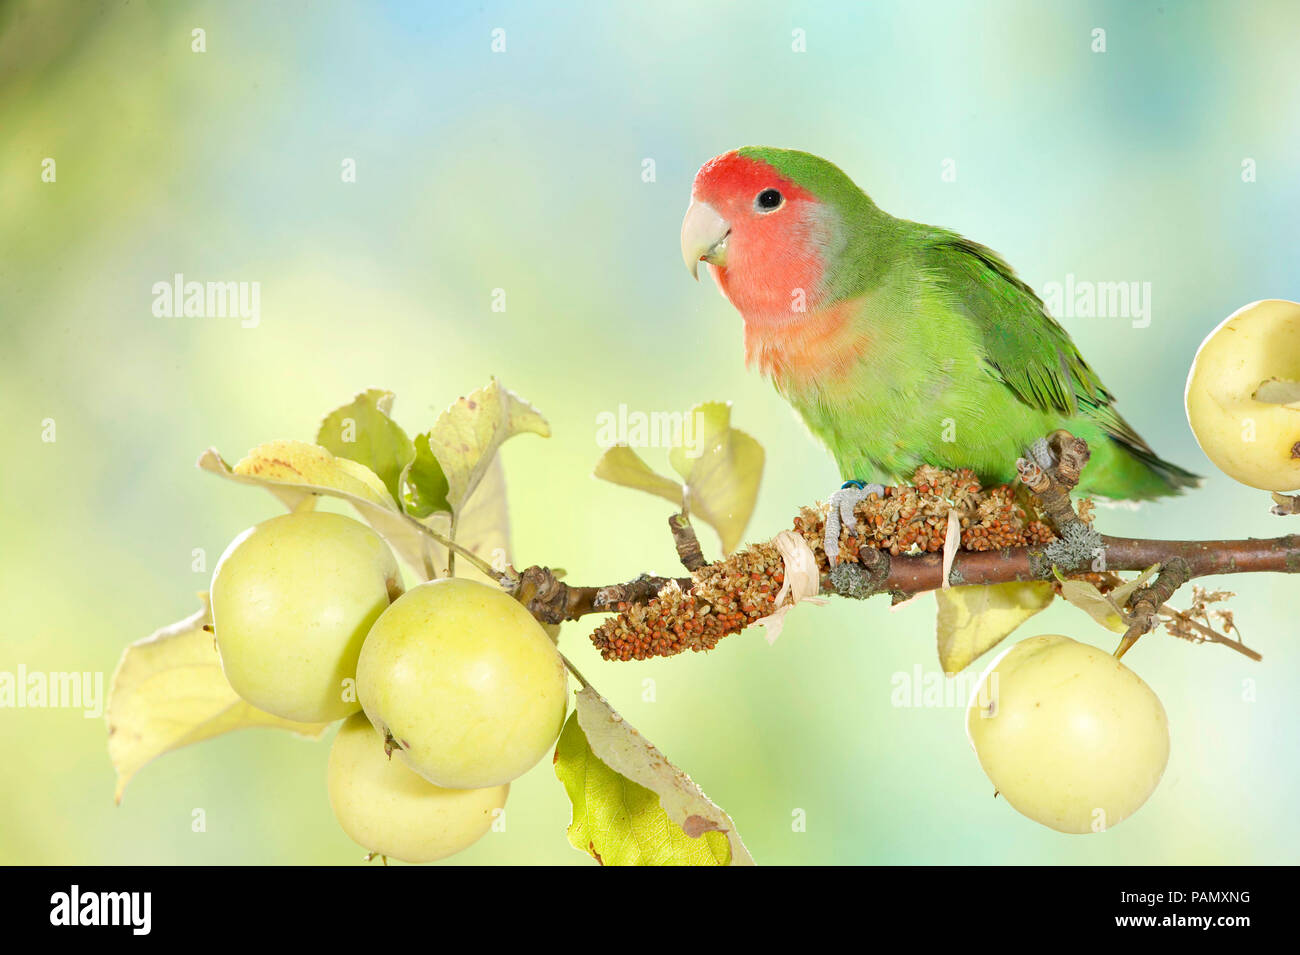 Rosy-faced Lovebird (Agapornis roseicollis) perched on a twig with ripe apples. Germany - Stock Image